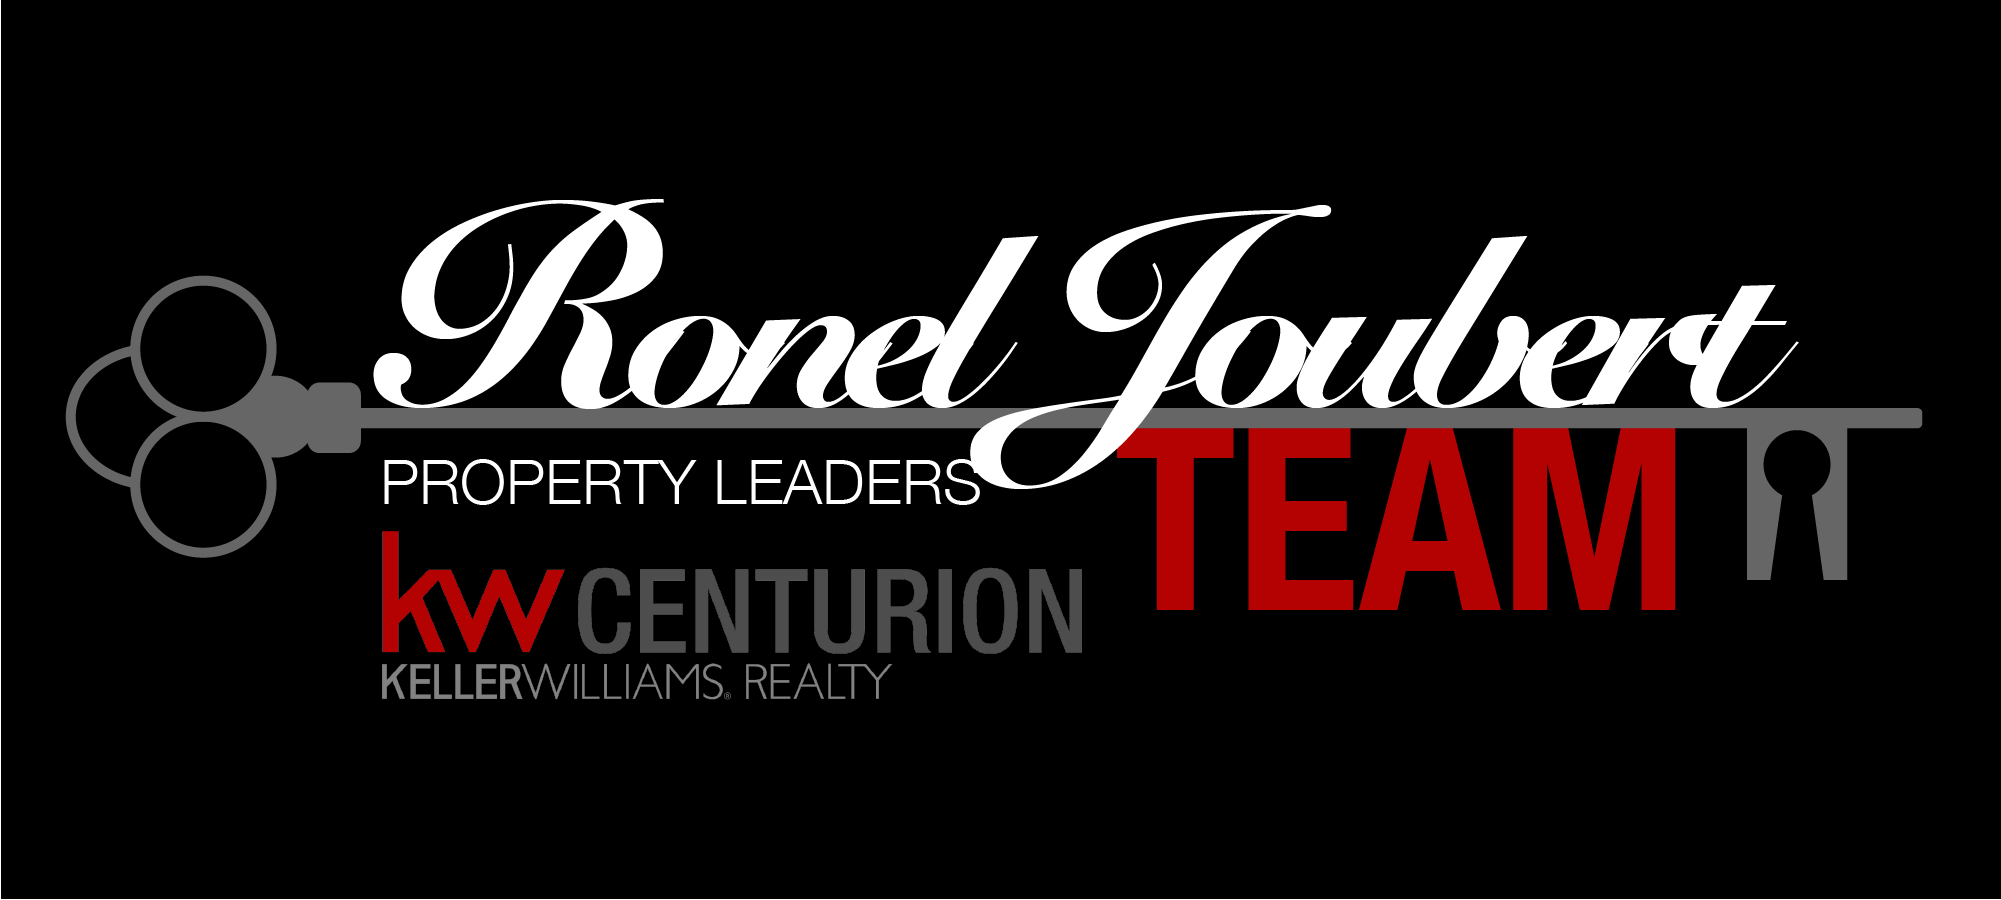 Ronel Joubert Team